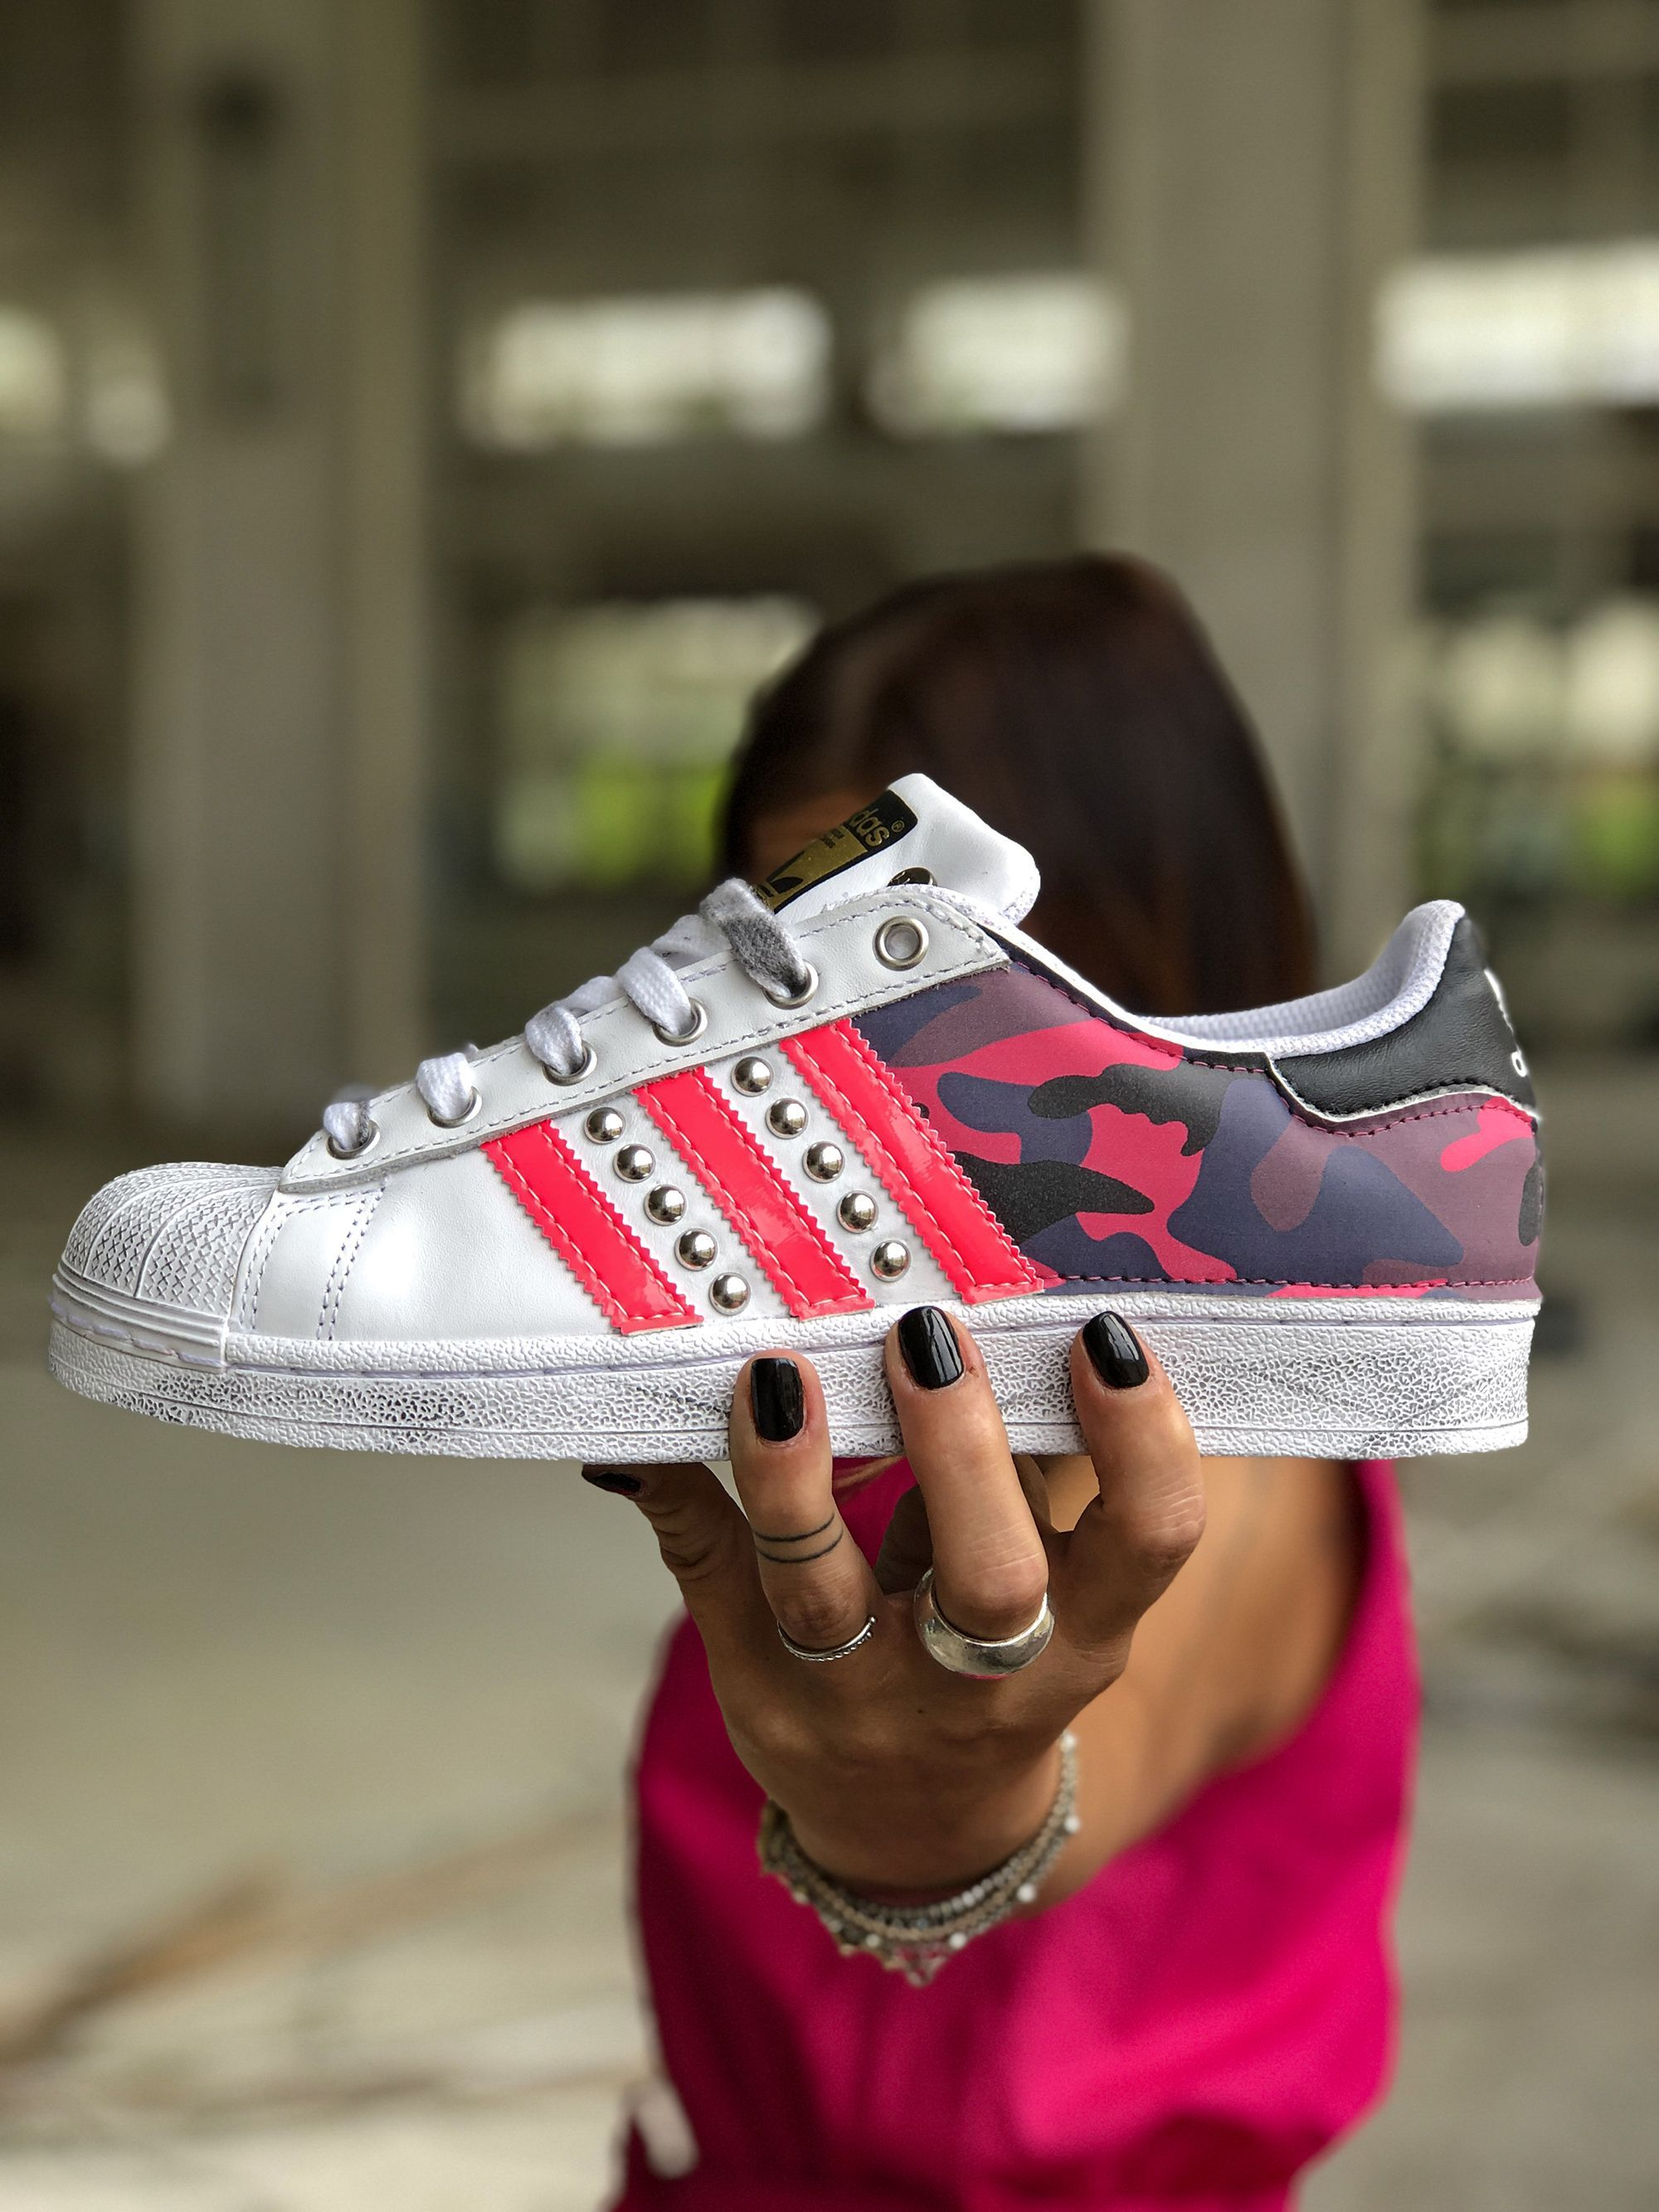 mineral suficiente ventajoso  Adidas Shoes 80% OFF!>> Adidas Superstar customized by Muffinshop #Adidas  #Adidasshoes #shoes #style … | Custom adidas superstar, Adidas shoes  outlet, Custom adidas